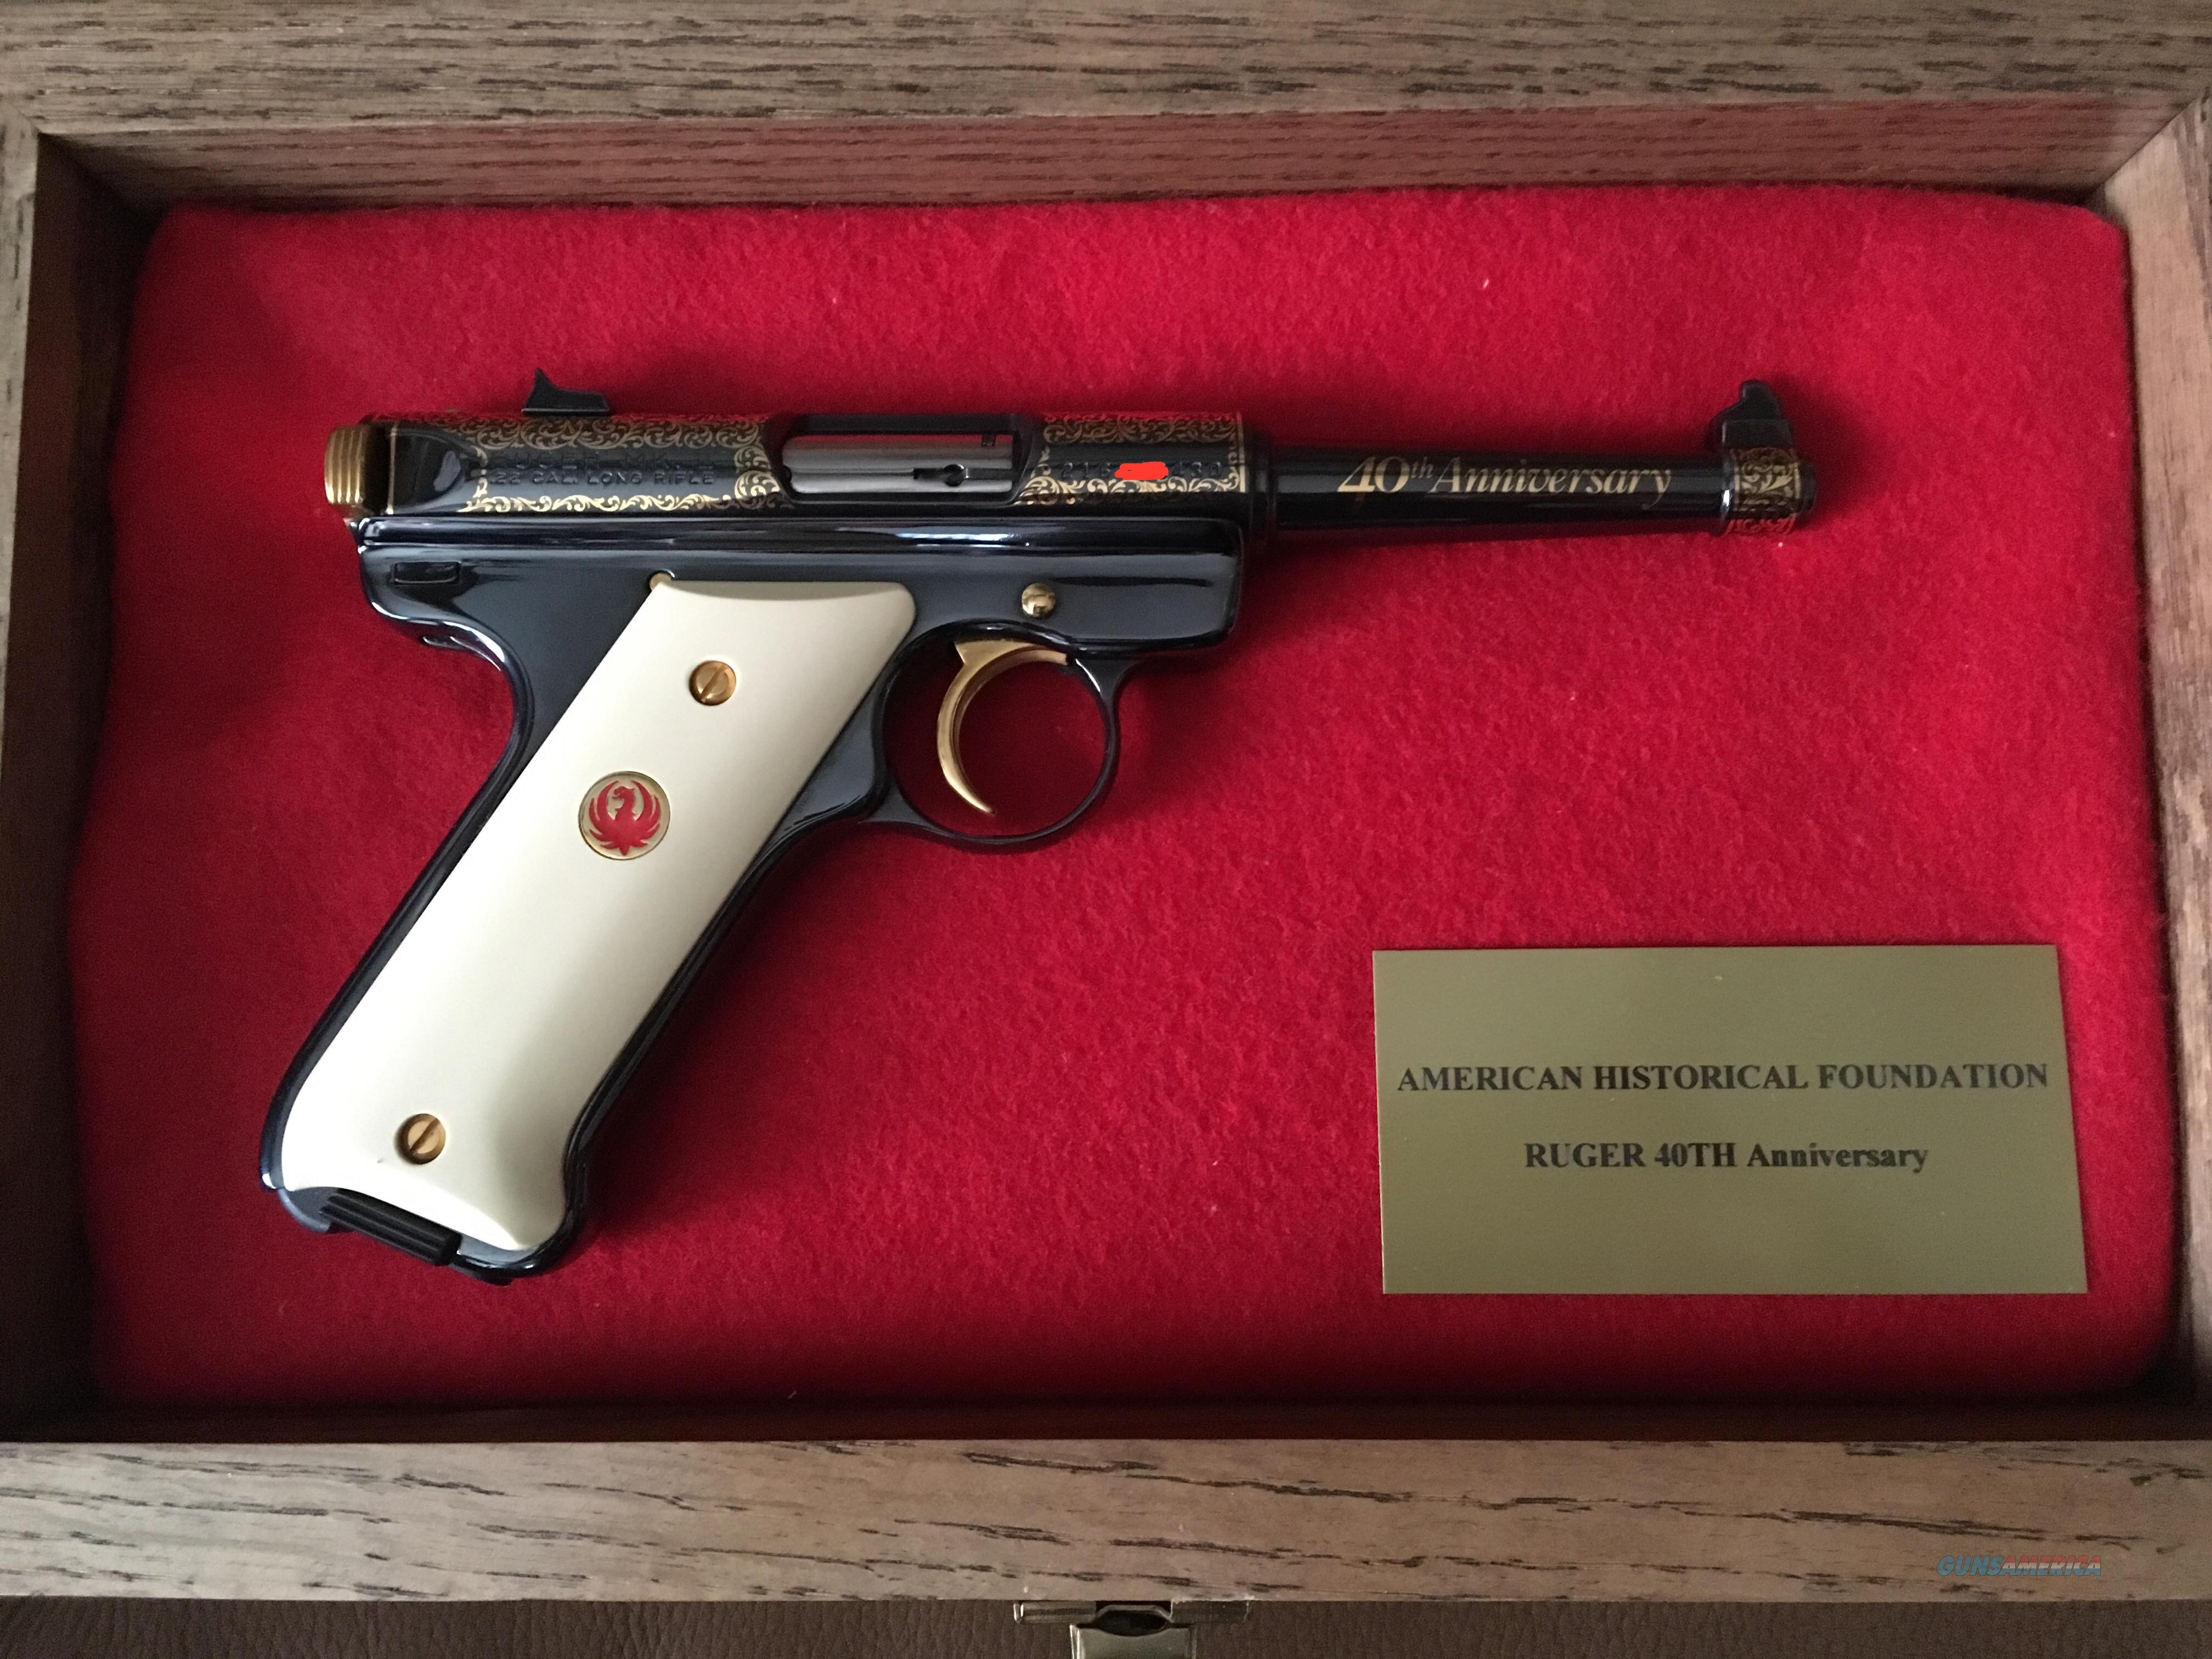 Ruger 40th Anniversary Mark II W/presentation case  Guns > Pistols > Ruger Semi-Auto Pistols > Mark I/II/III Family